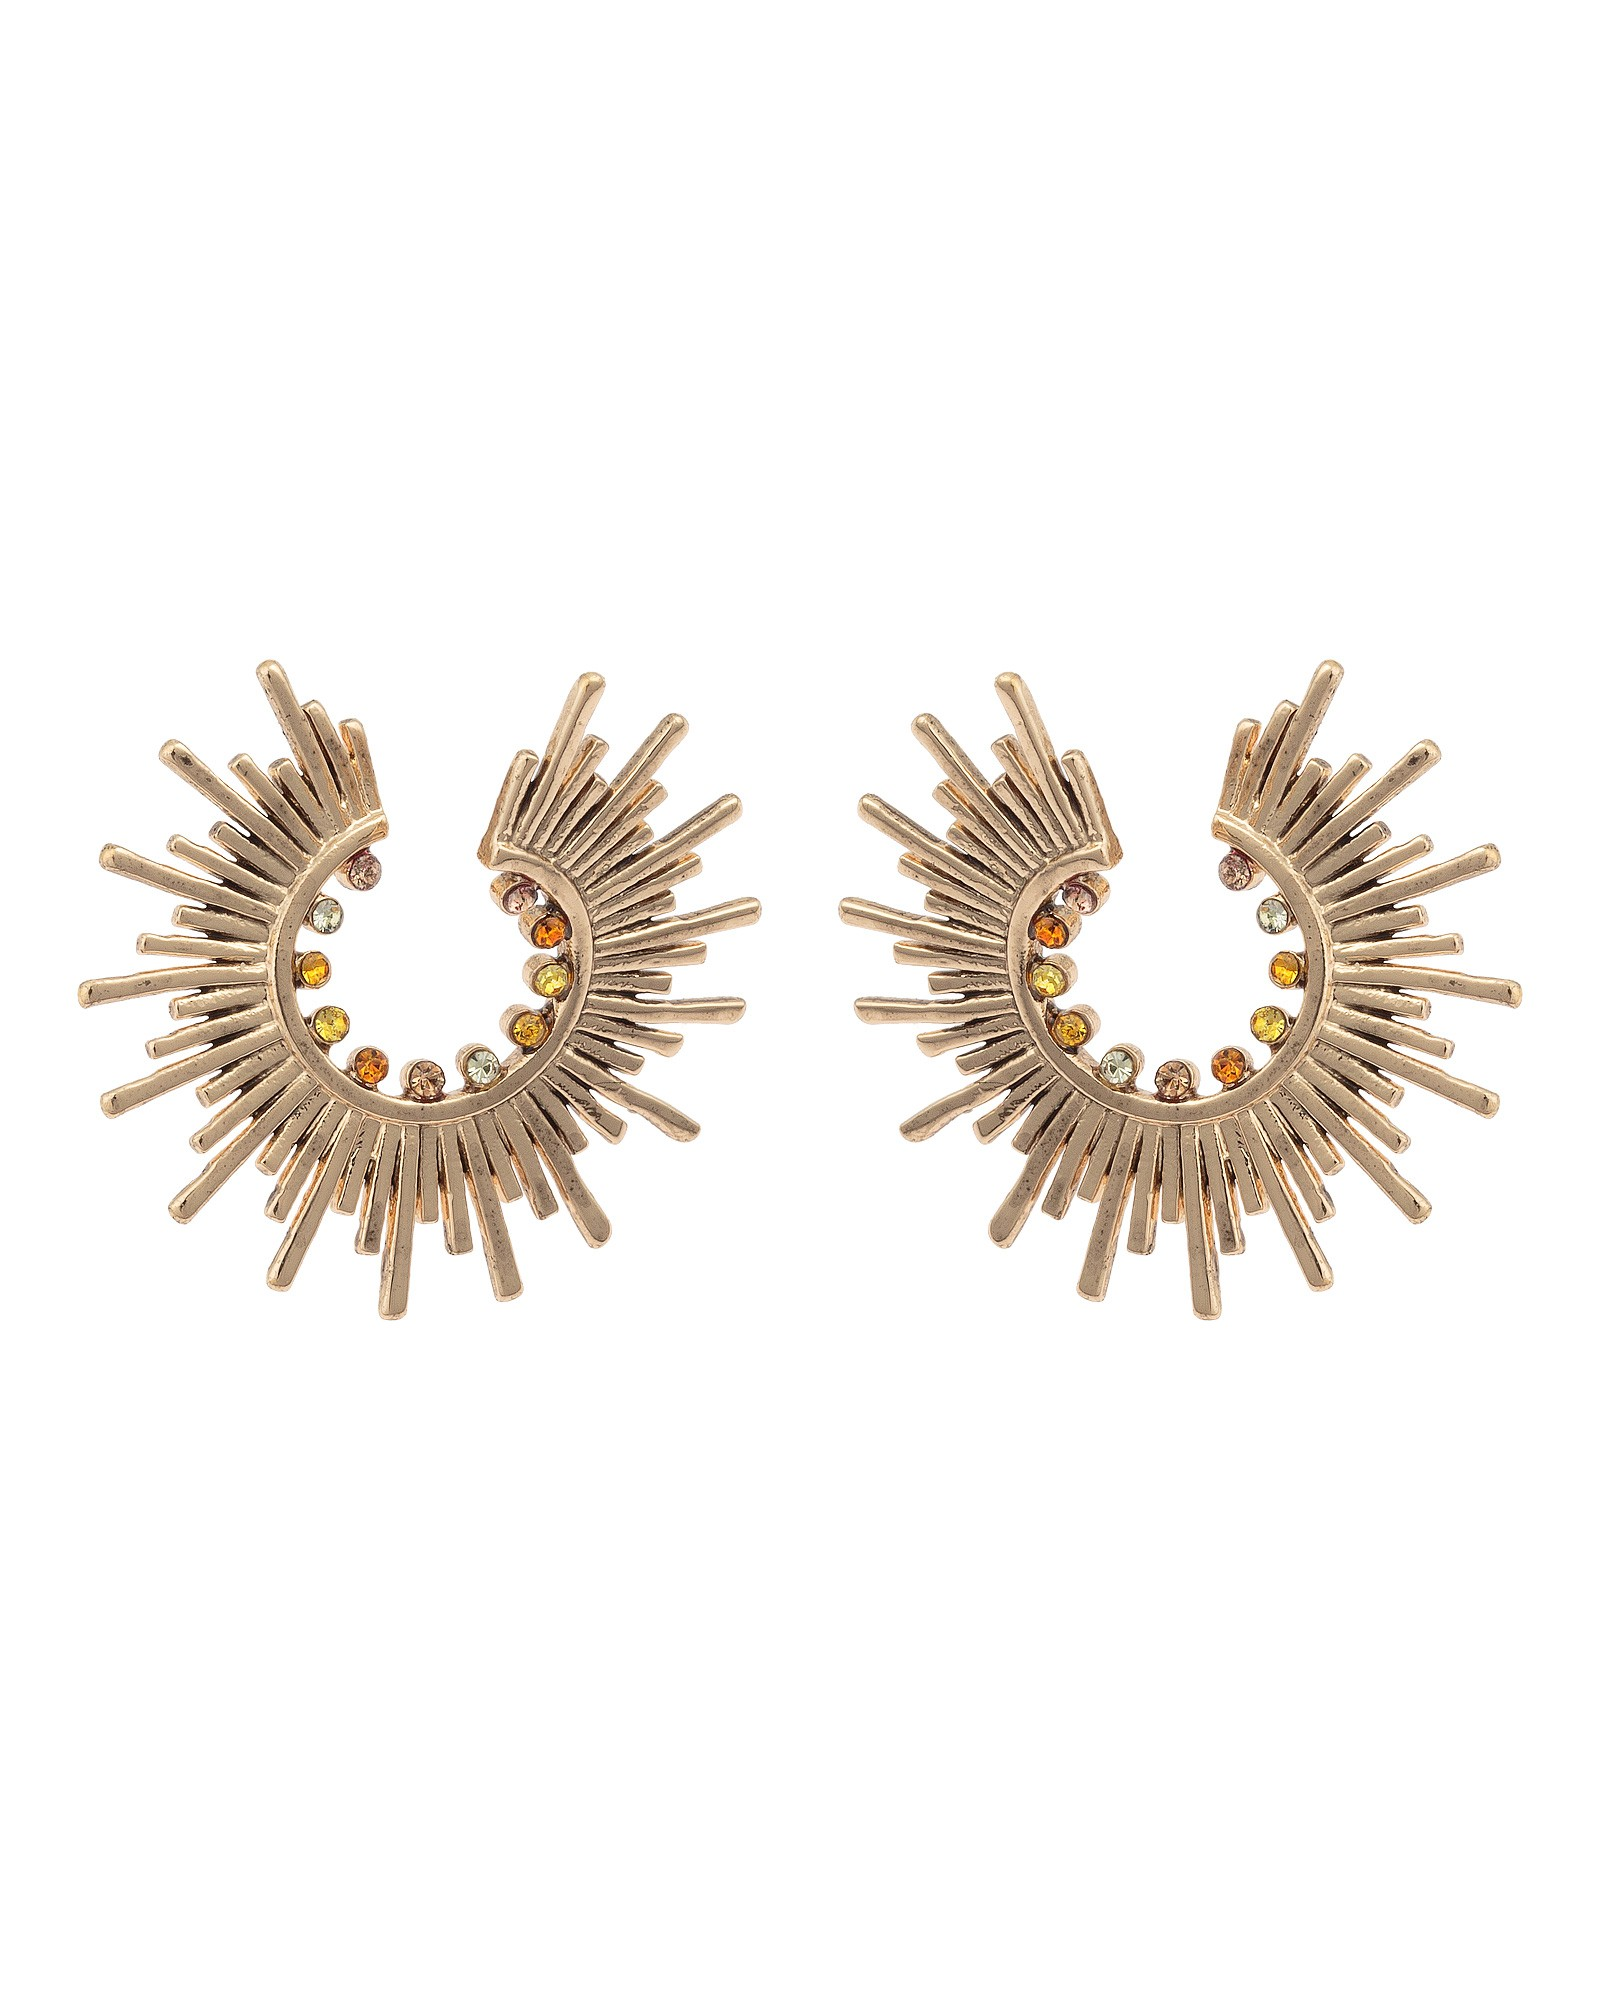 Oliver Bonas Earrings